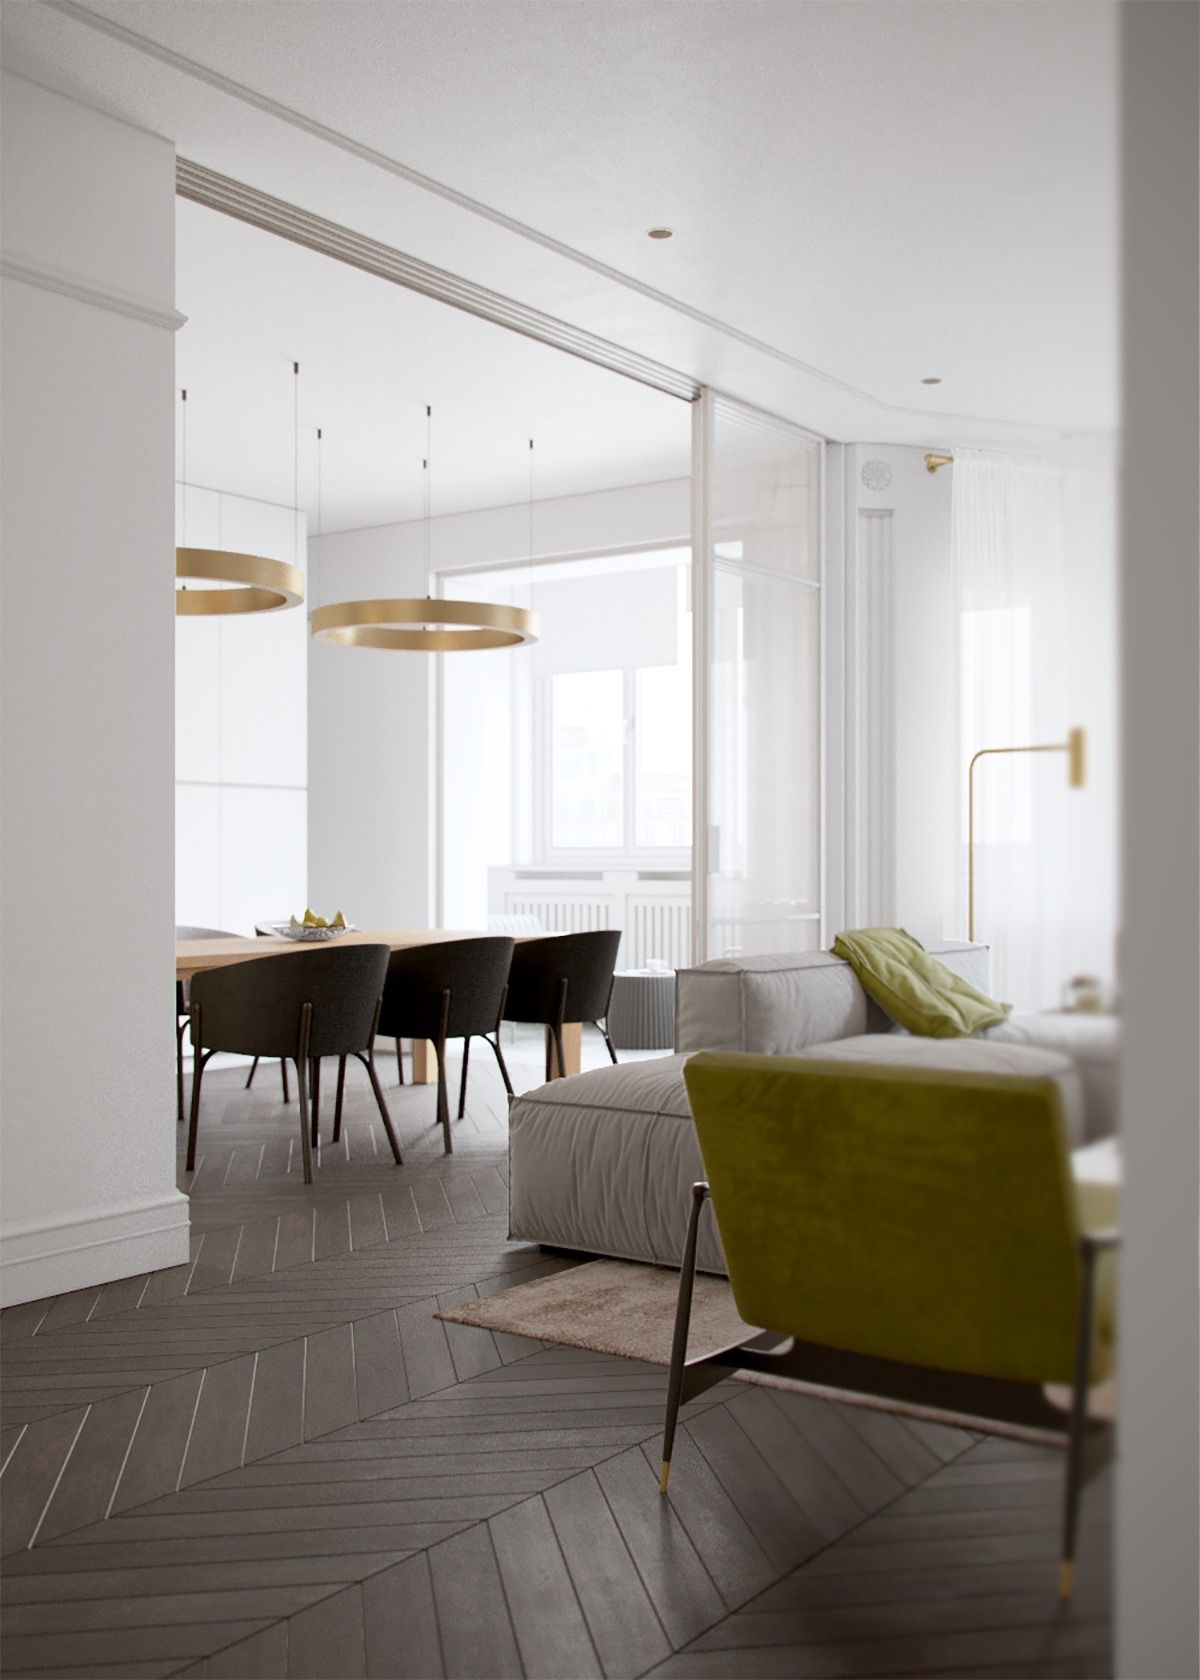 Flexi 2 Room Interior Design: Light And Modern Sophistication In A Two Bedroom Apartment